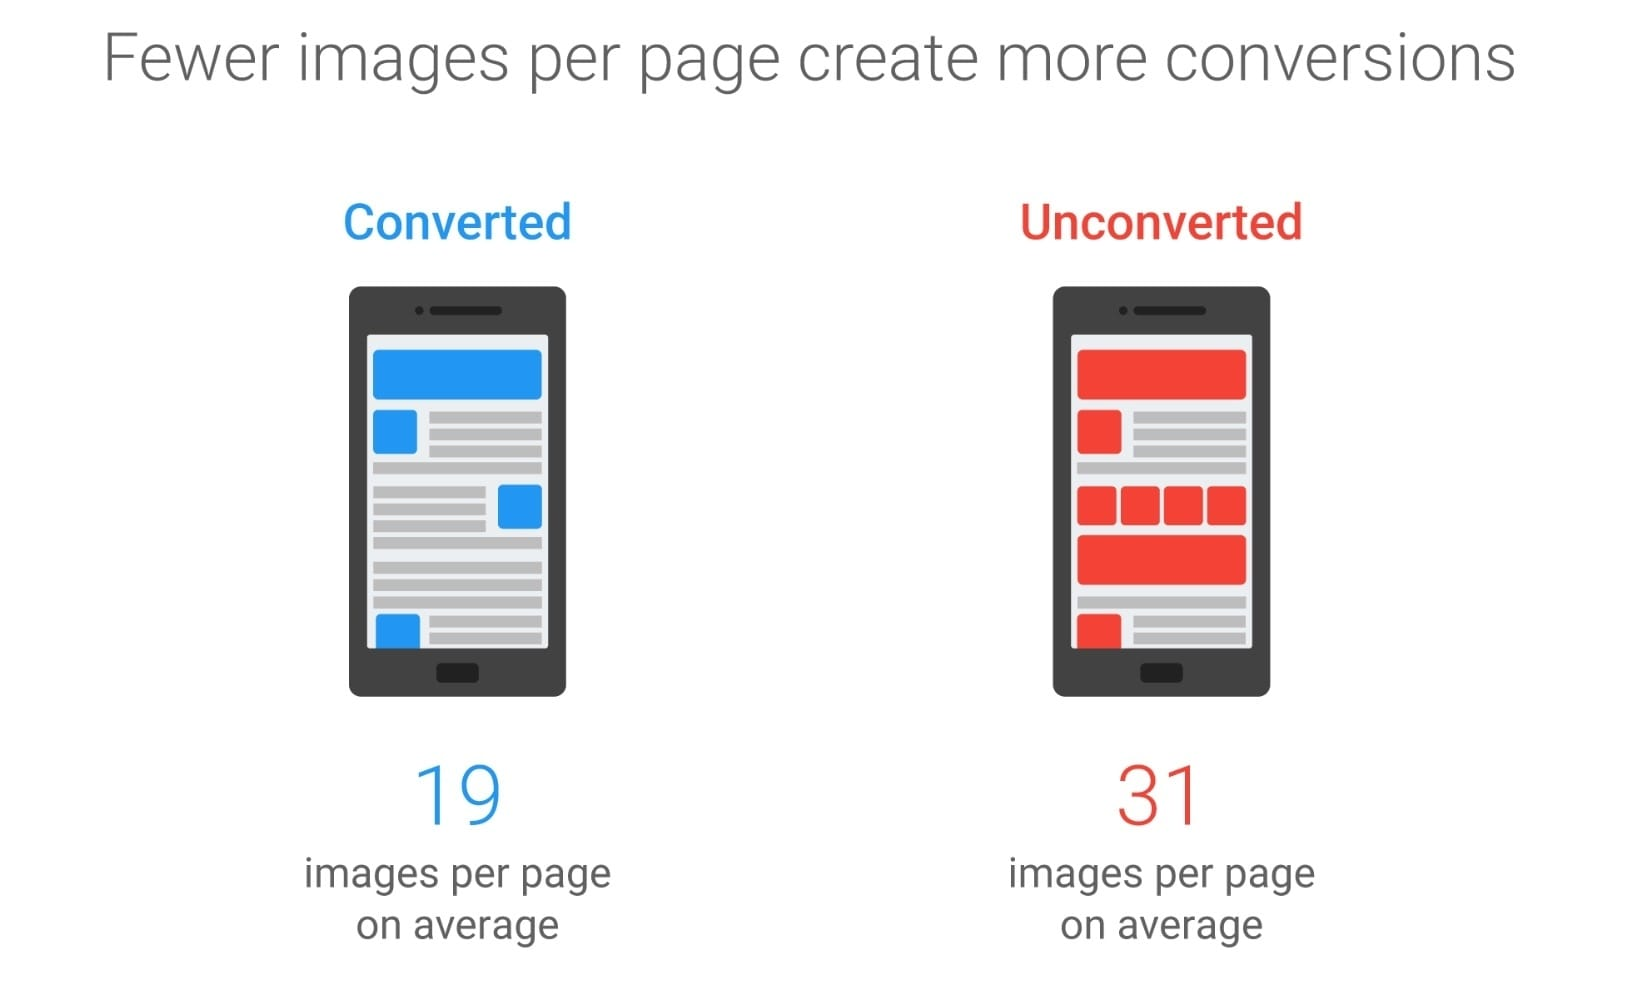 Essential image optimization fewer images per page create more conversions 19 images per page on average converted better fandeluxe Choice Image